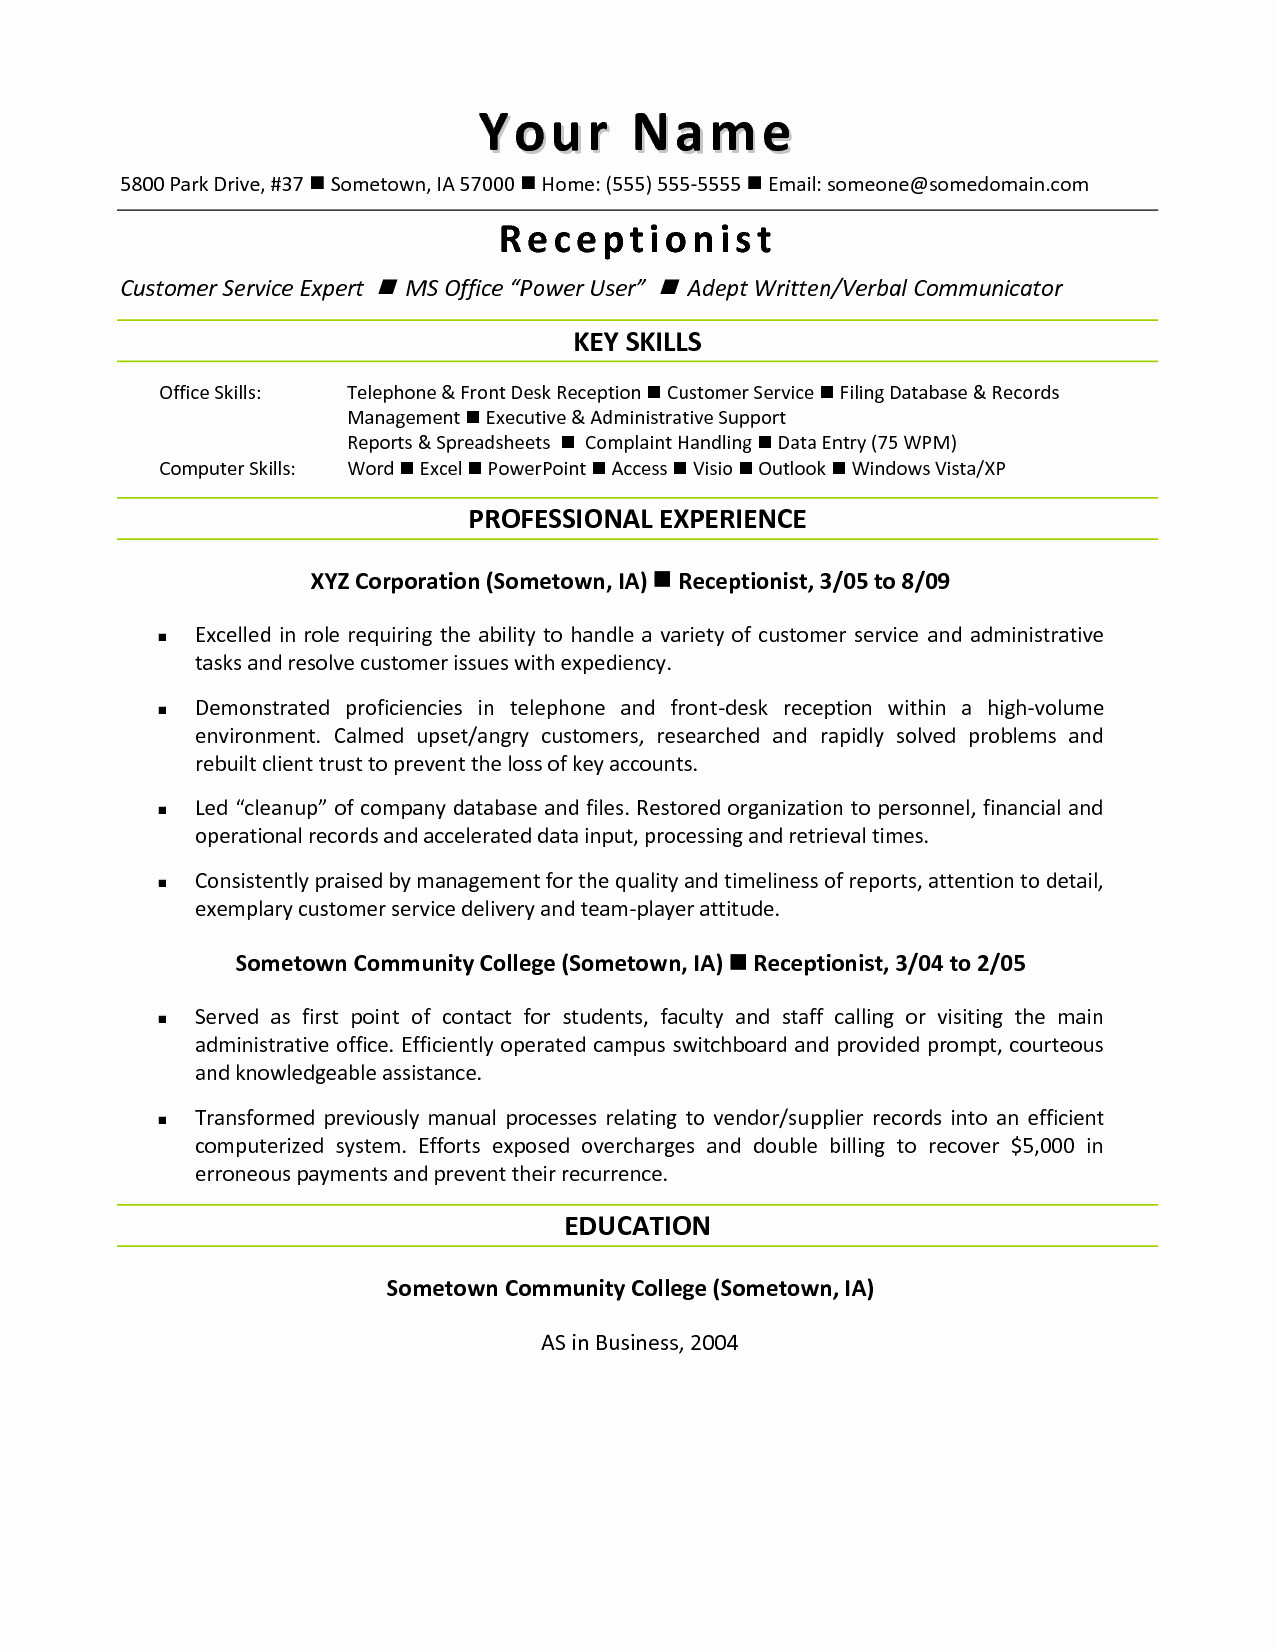 Secretary Cover Letter Template - Unique Secretary Resume Templates